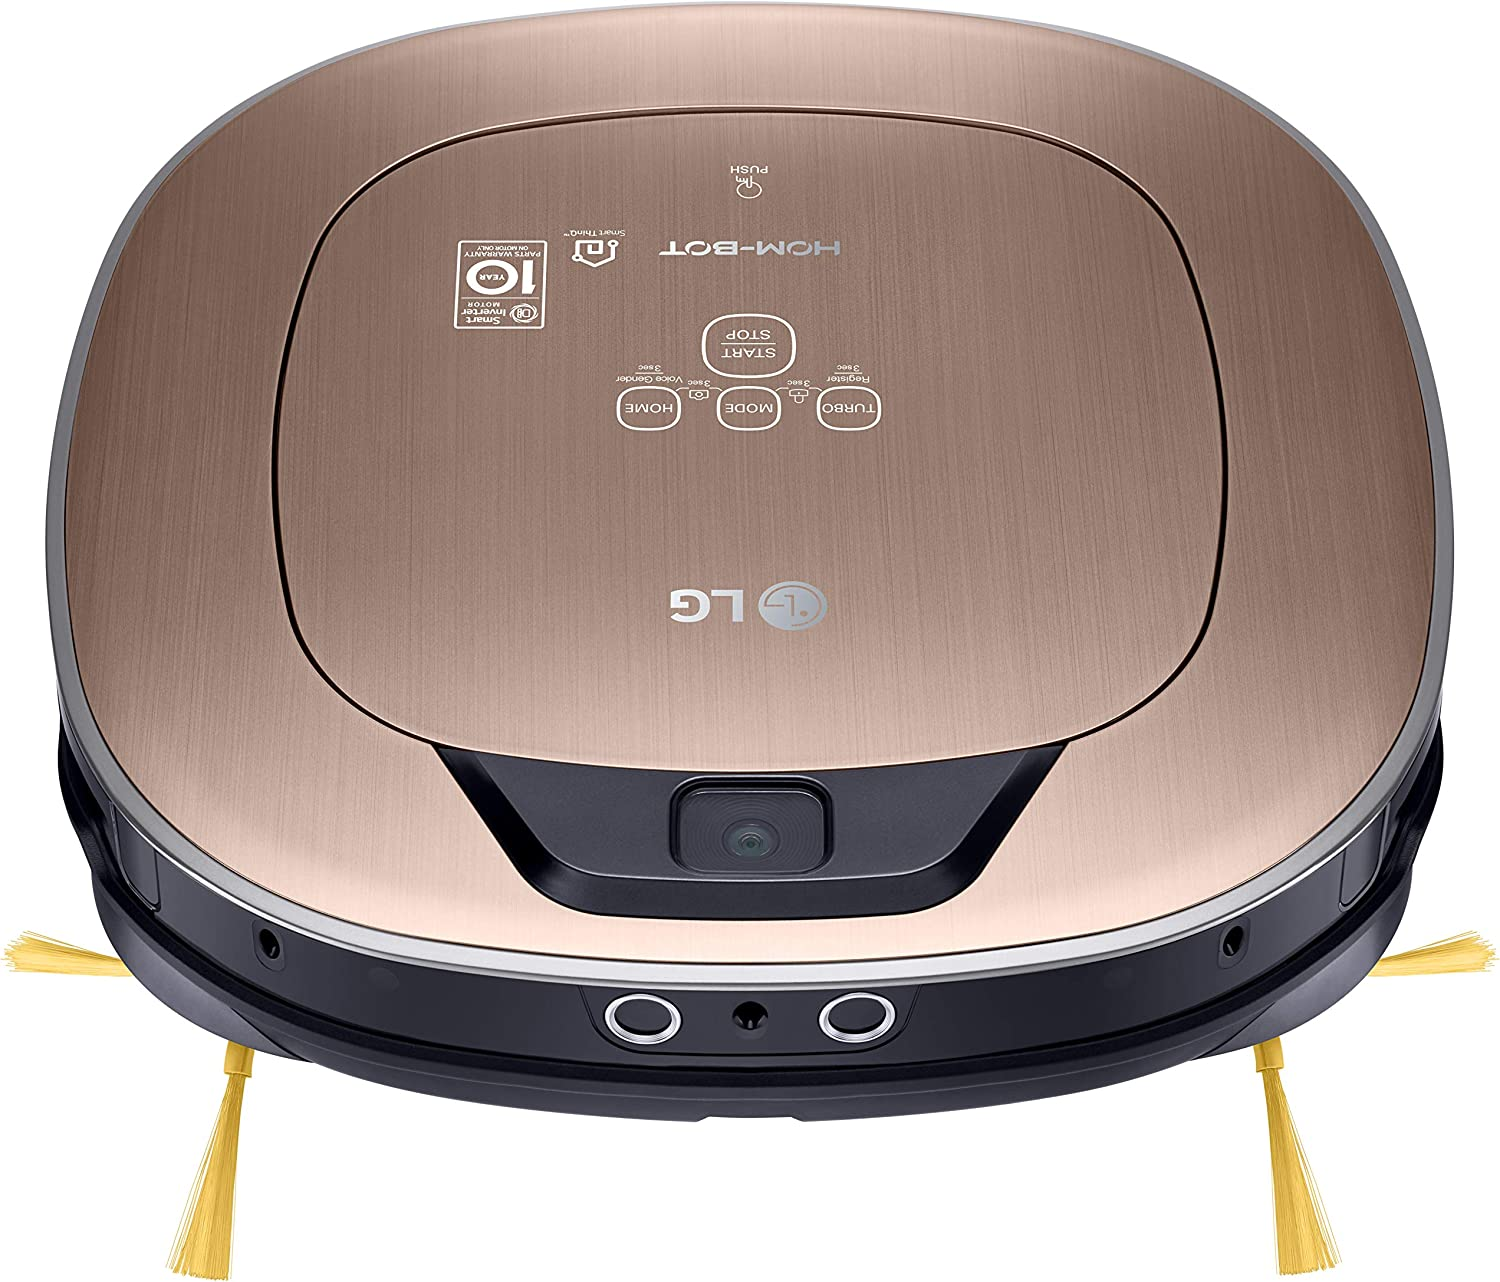 LG HOM-BOT Wi-Fi Enabled Robotic Vacuum, Dual Eye Camera Mapping System, for Carpets, Hardwood and Tile, CR5765GD, Metallic Gold